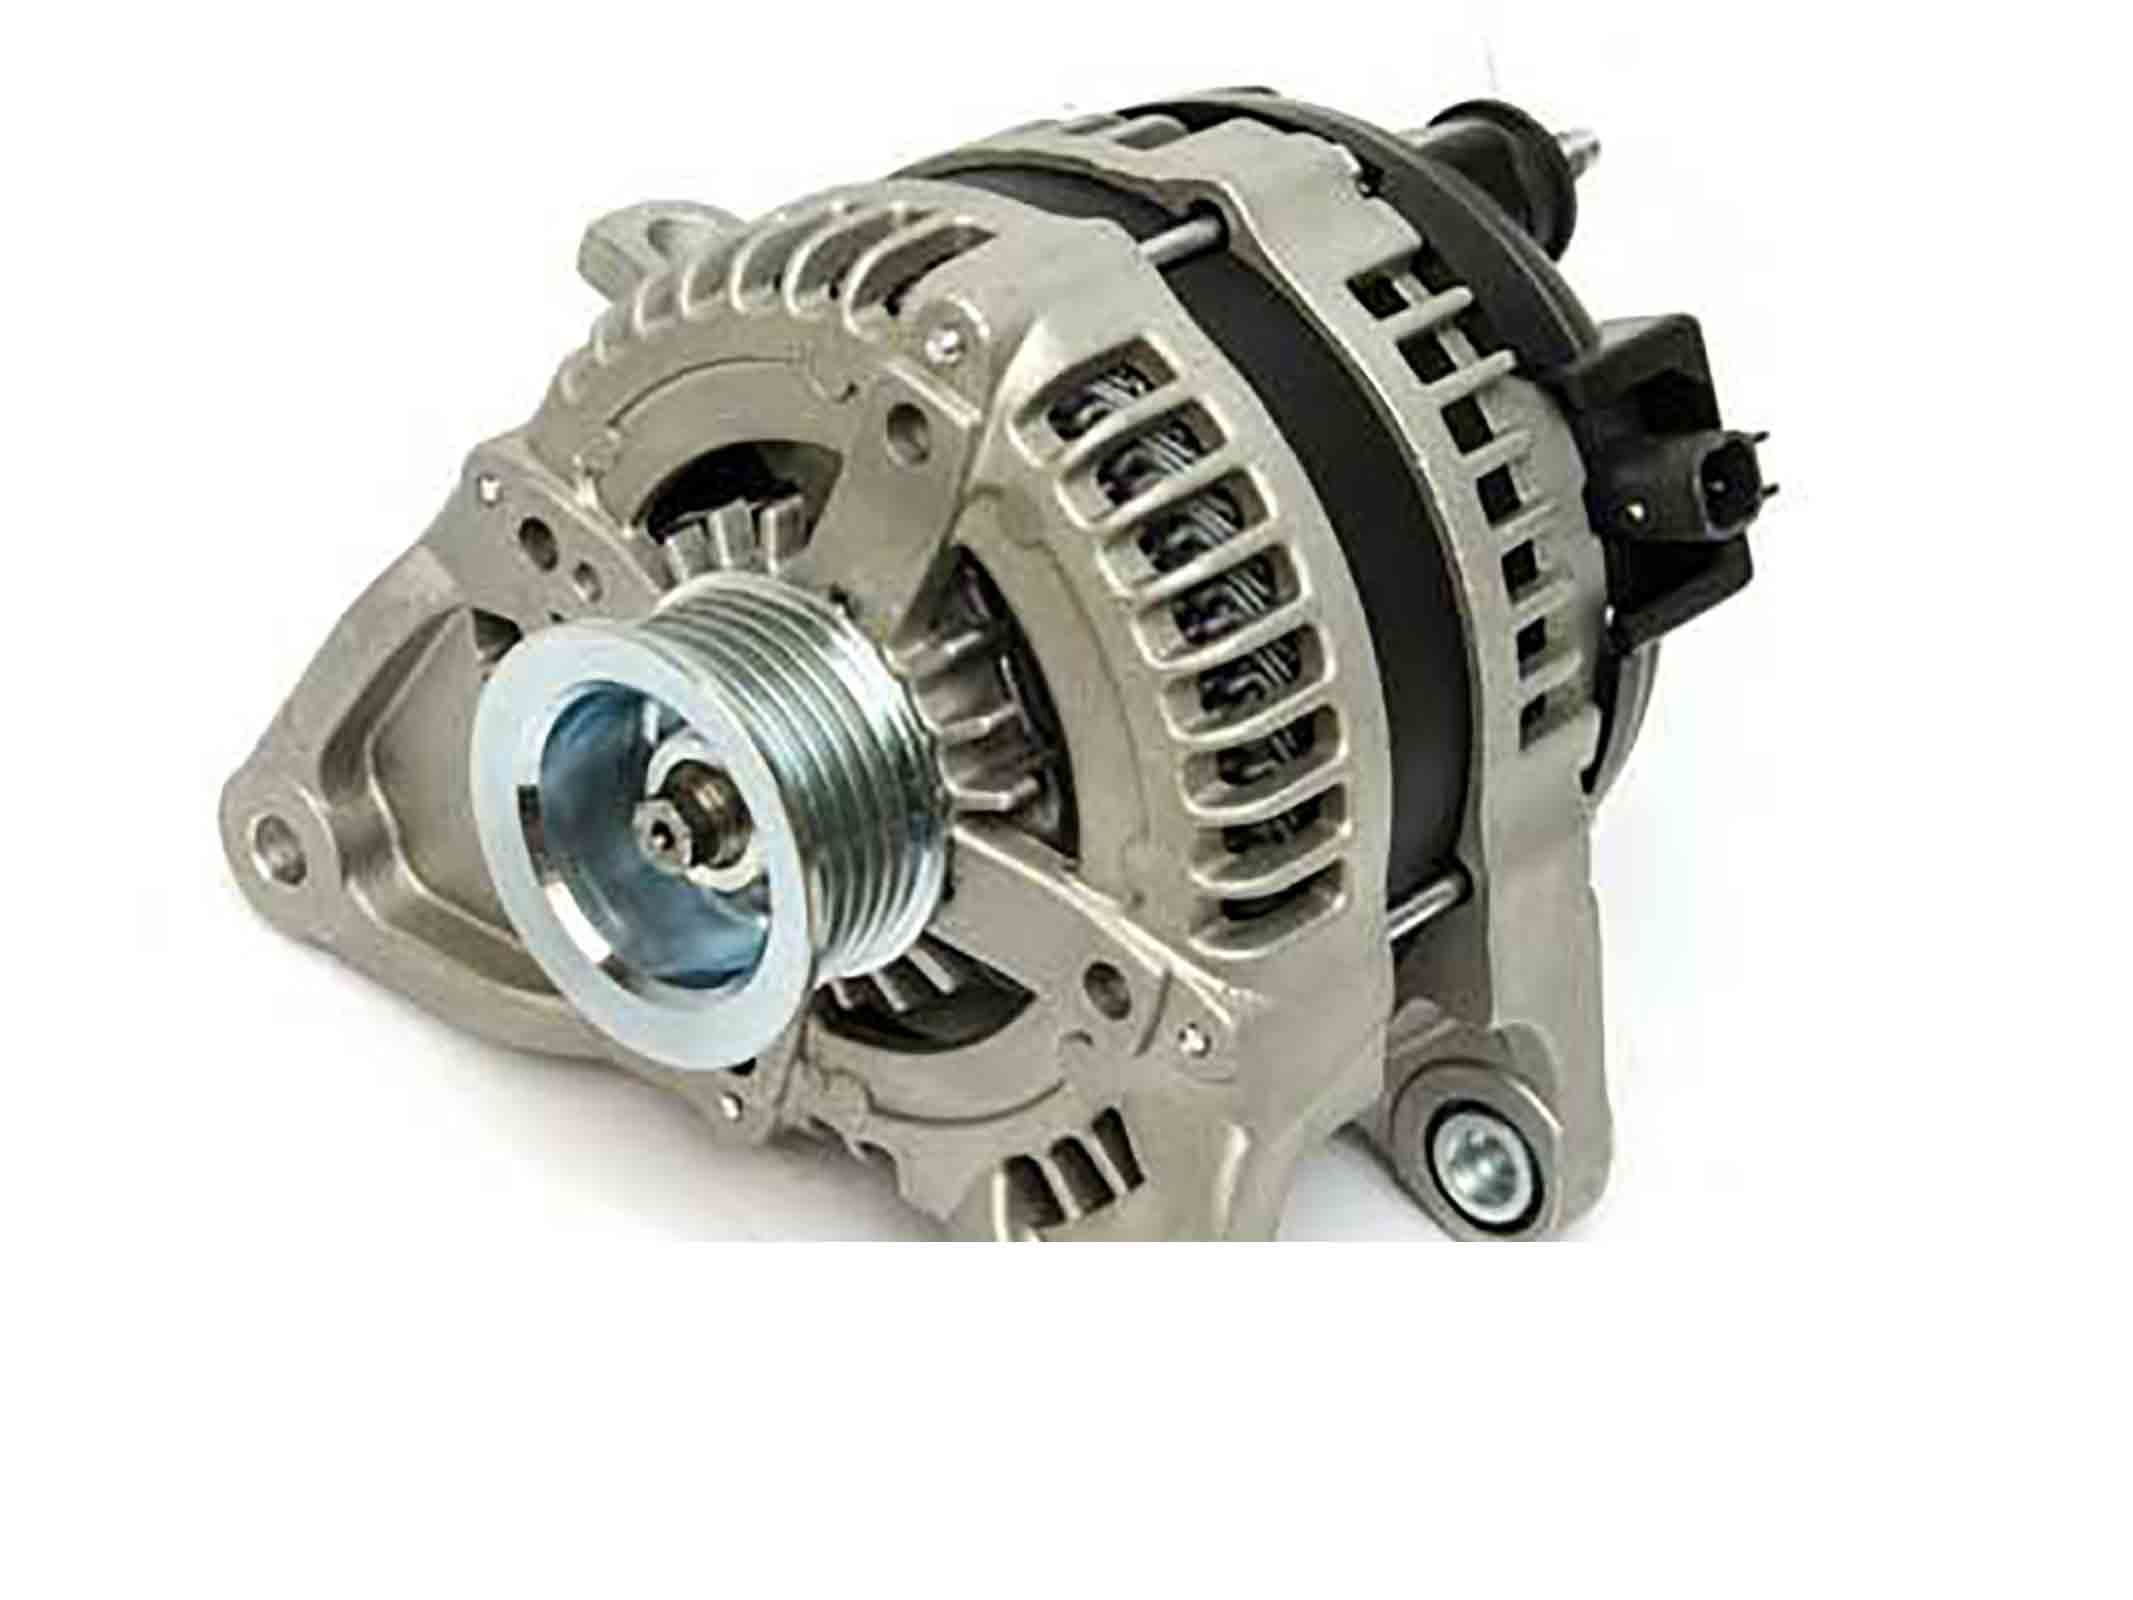 Alternatore grand cherokee wh wk 05 09 commander xh xk 06 09 5.7 l. + 6.1 l. ricambi jeep